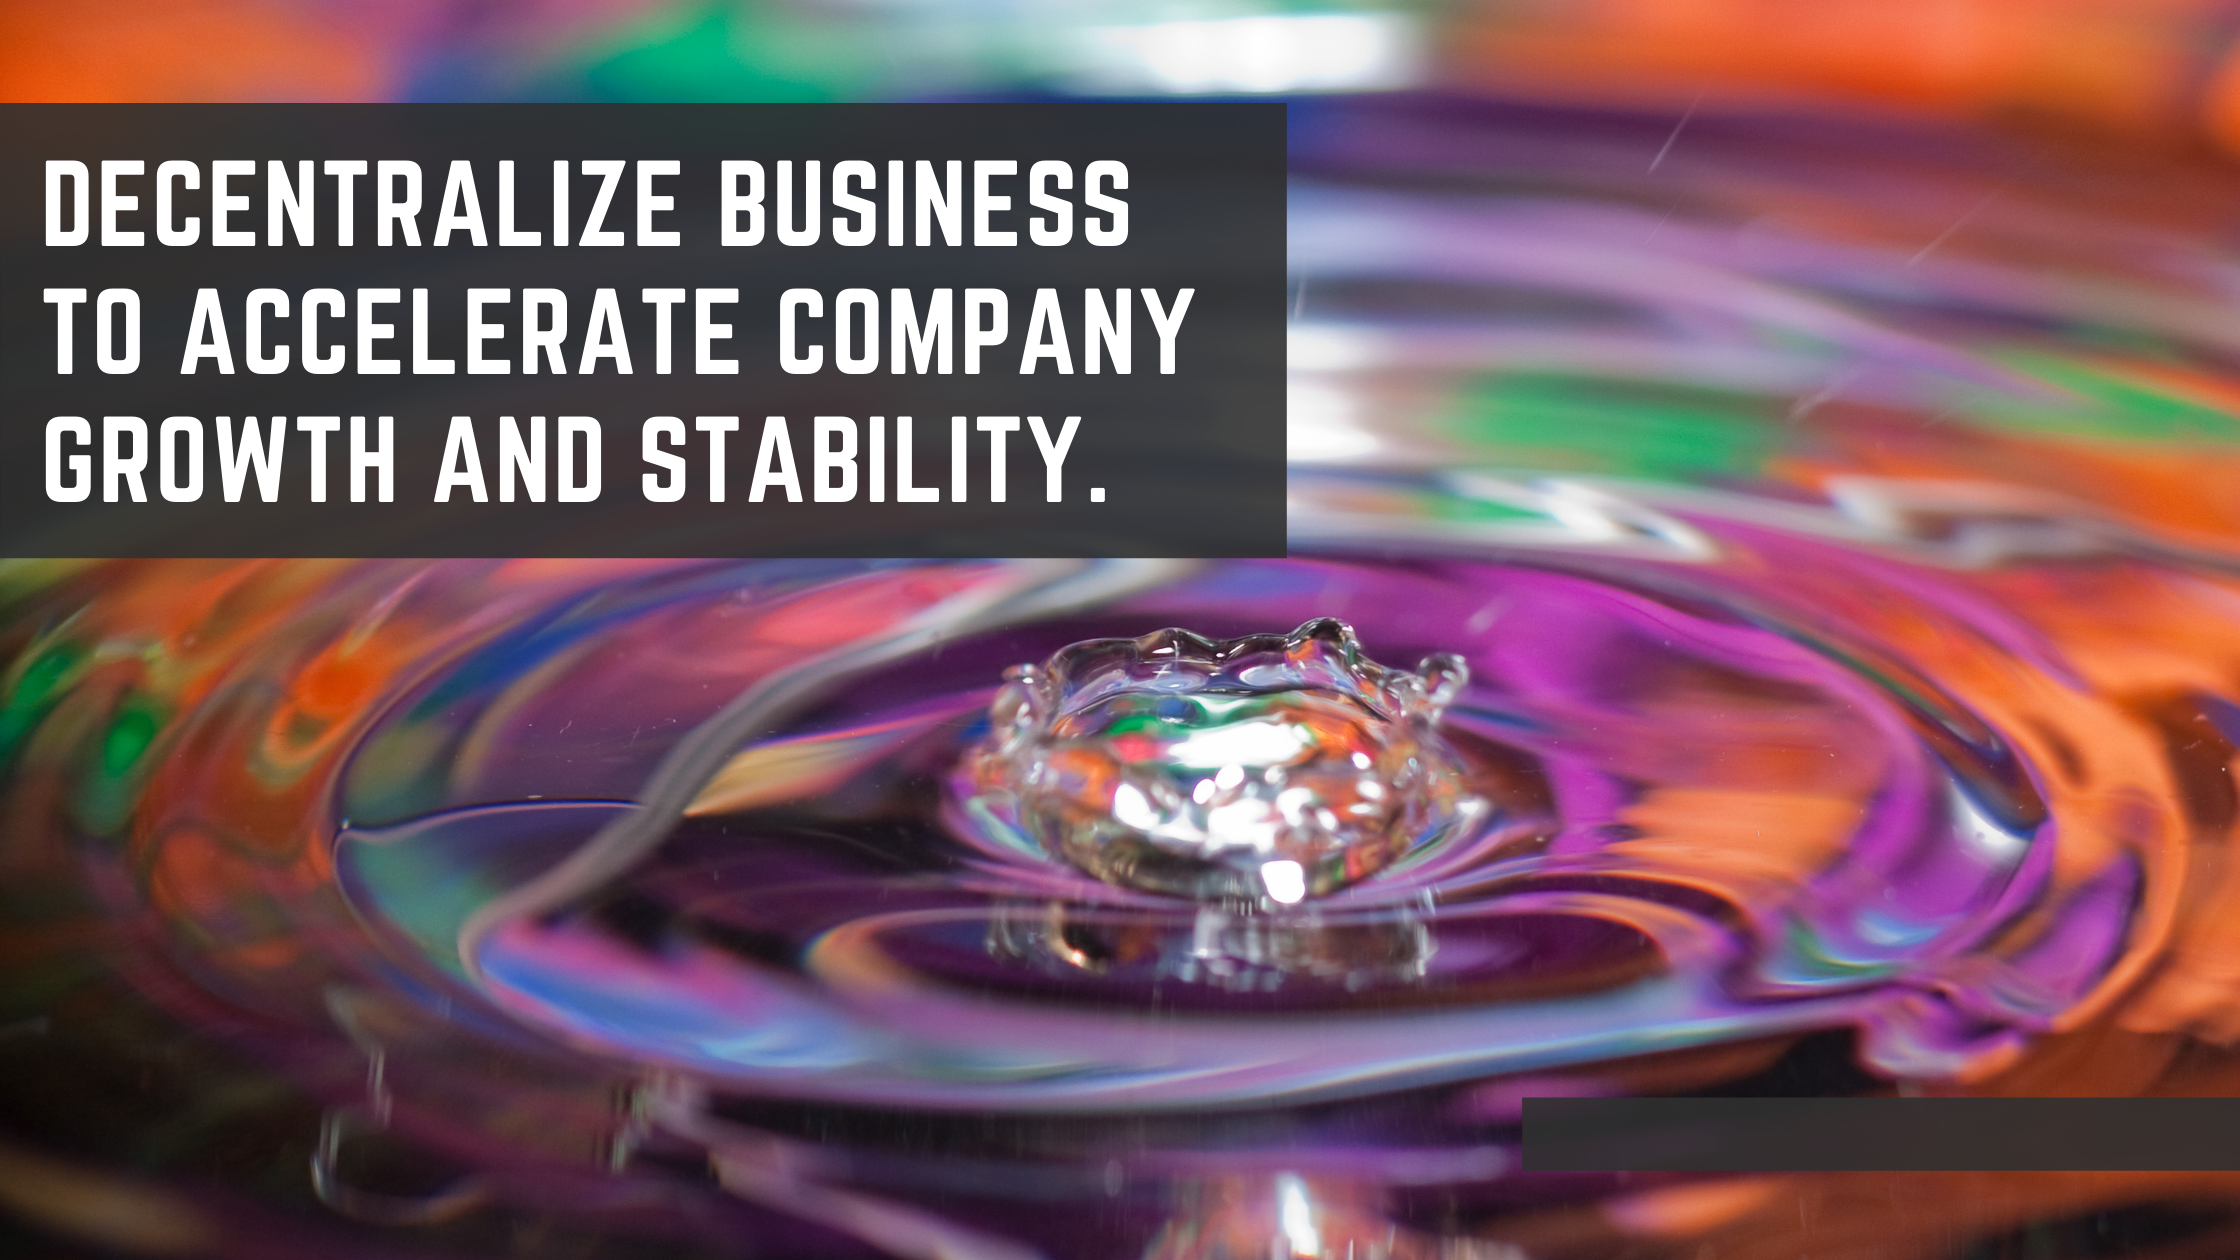 decentralize business to accelerate company growth and stability.